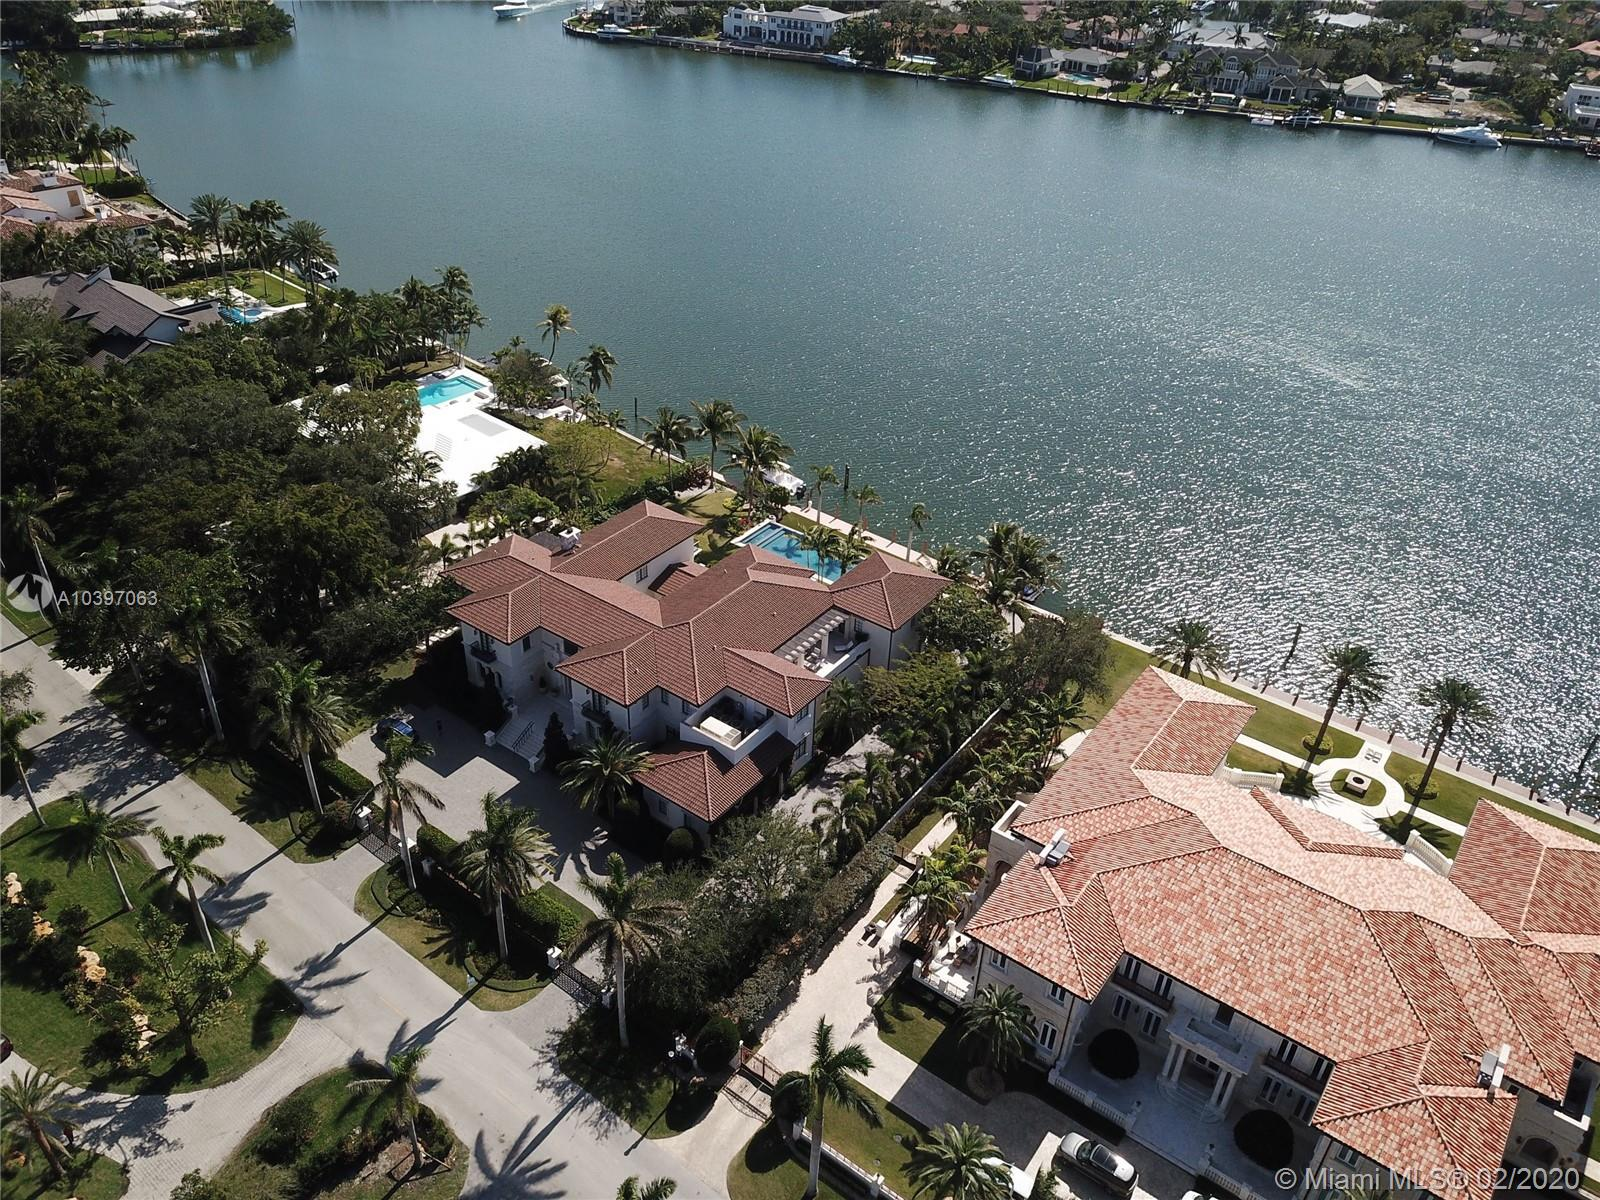 500  Arvida Pkwy  For Sale A10397063, FL